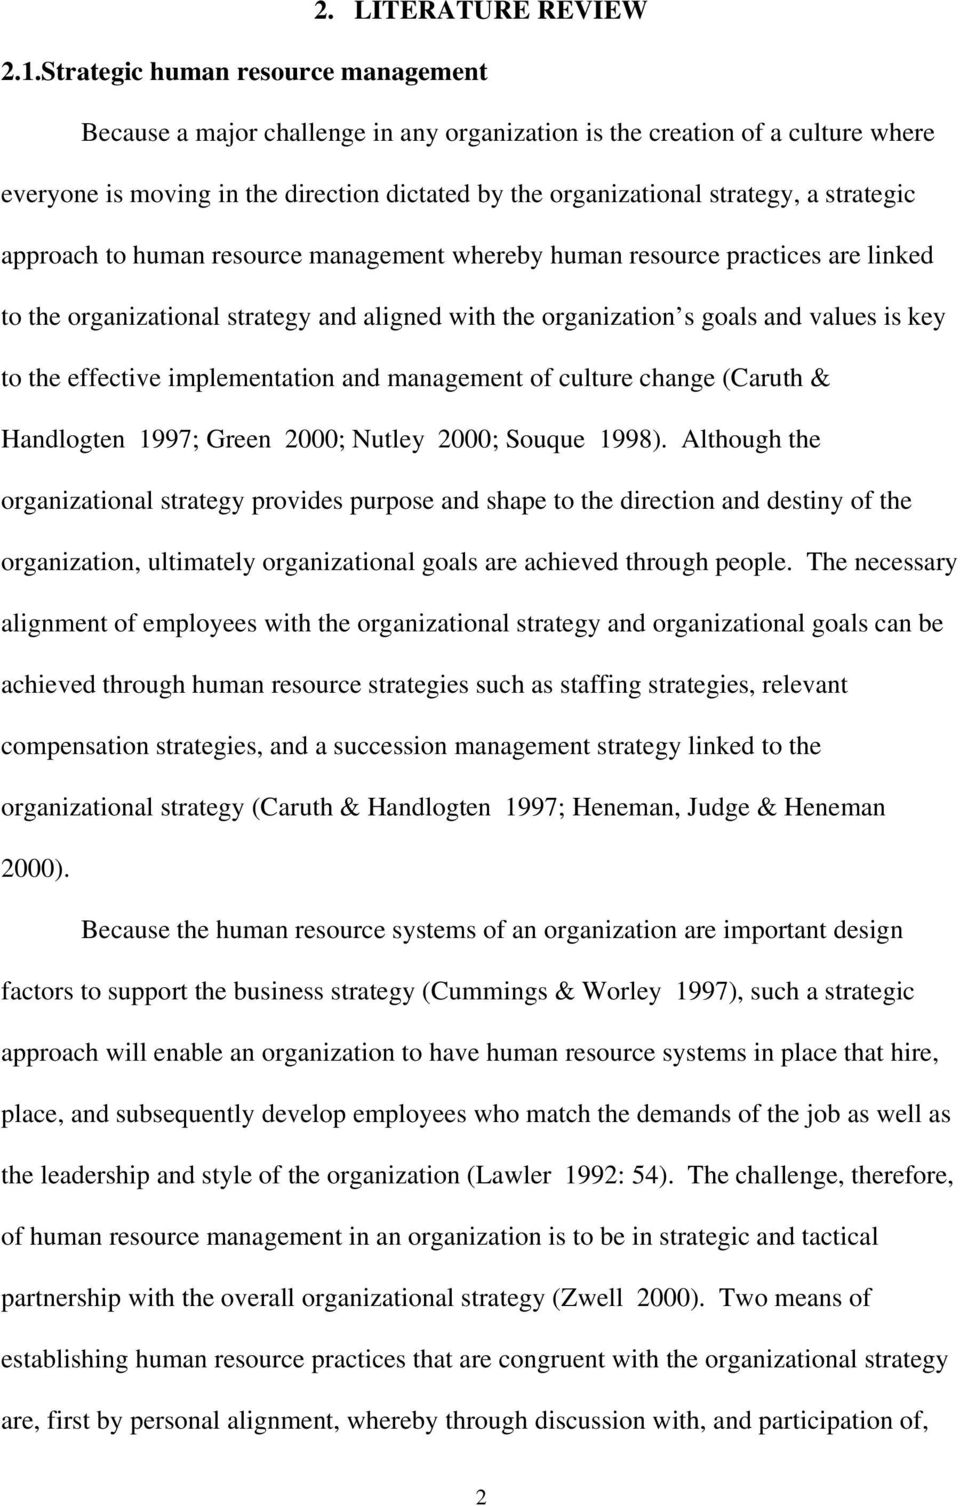 strategic approach to human resource management whereby human resource practices are linked to the organizational strategy and aligned with the organization s goals and values is key to the effective